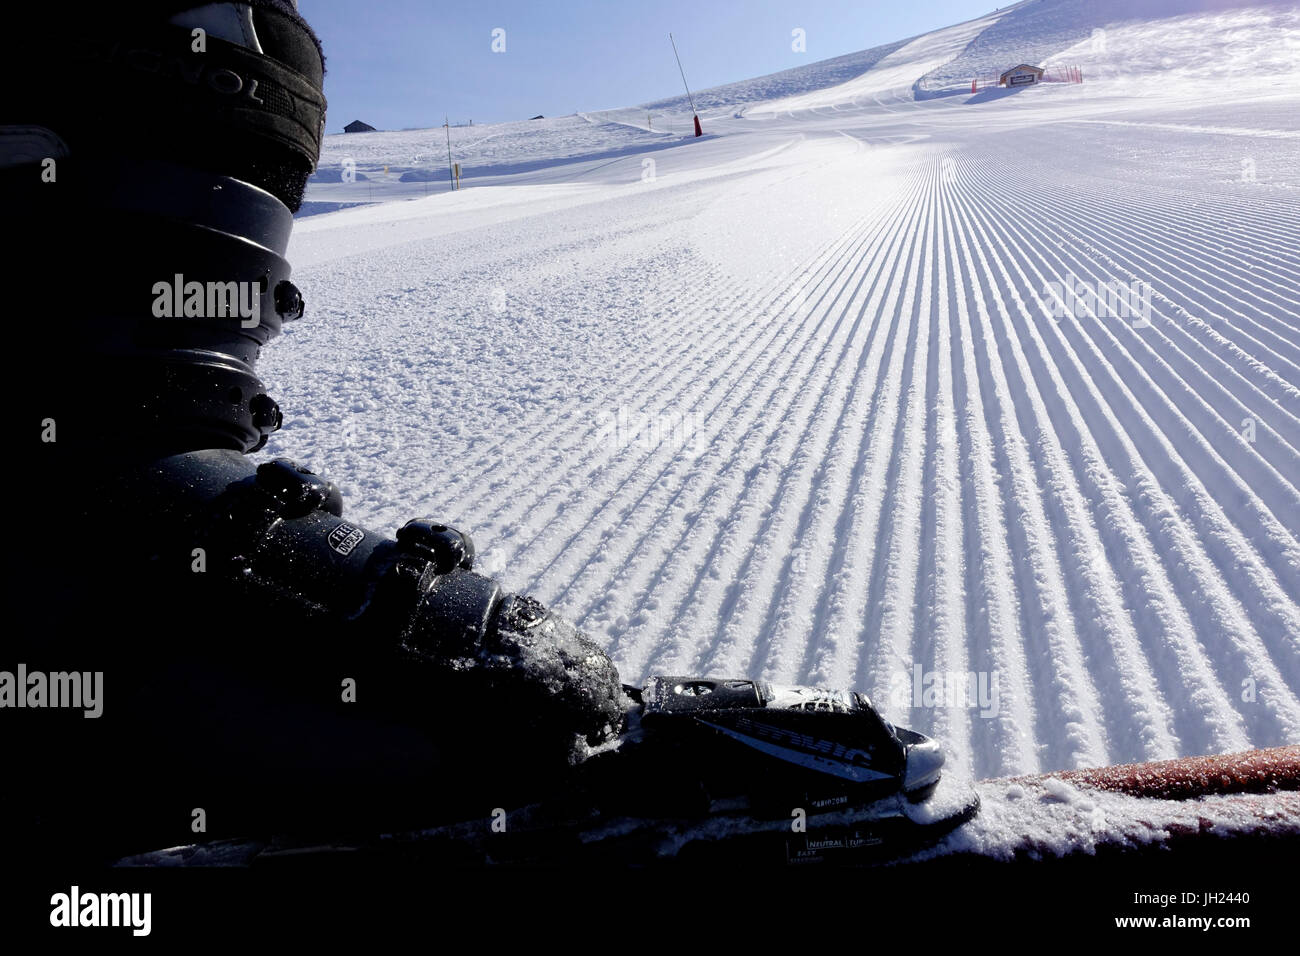 French Alps.  Groomed Ski Piste.  France. - Stock Image